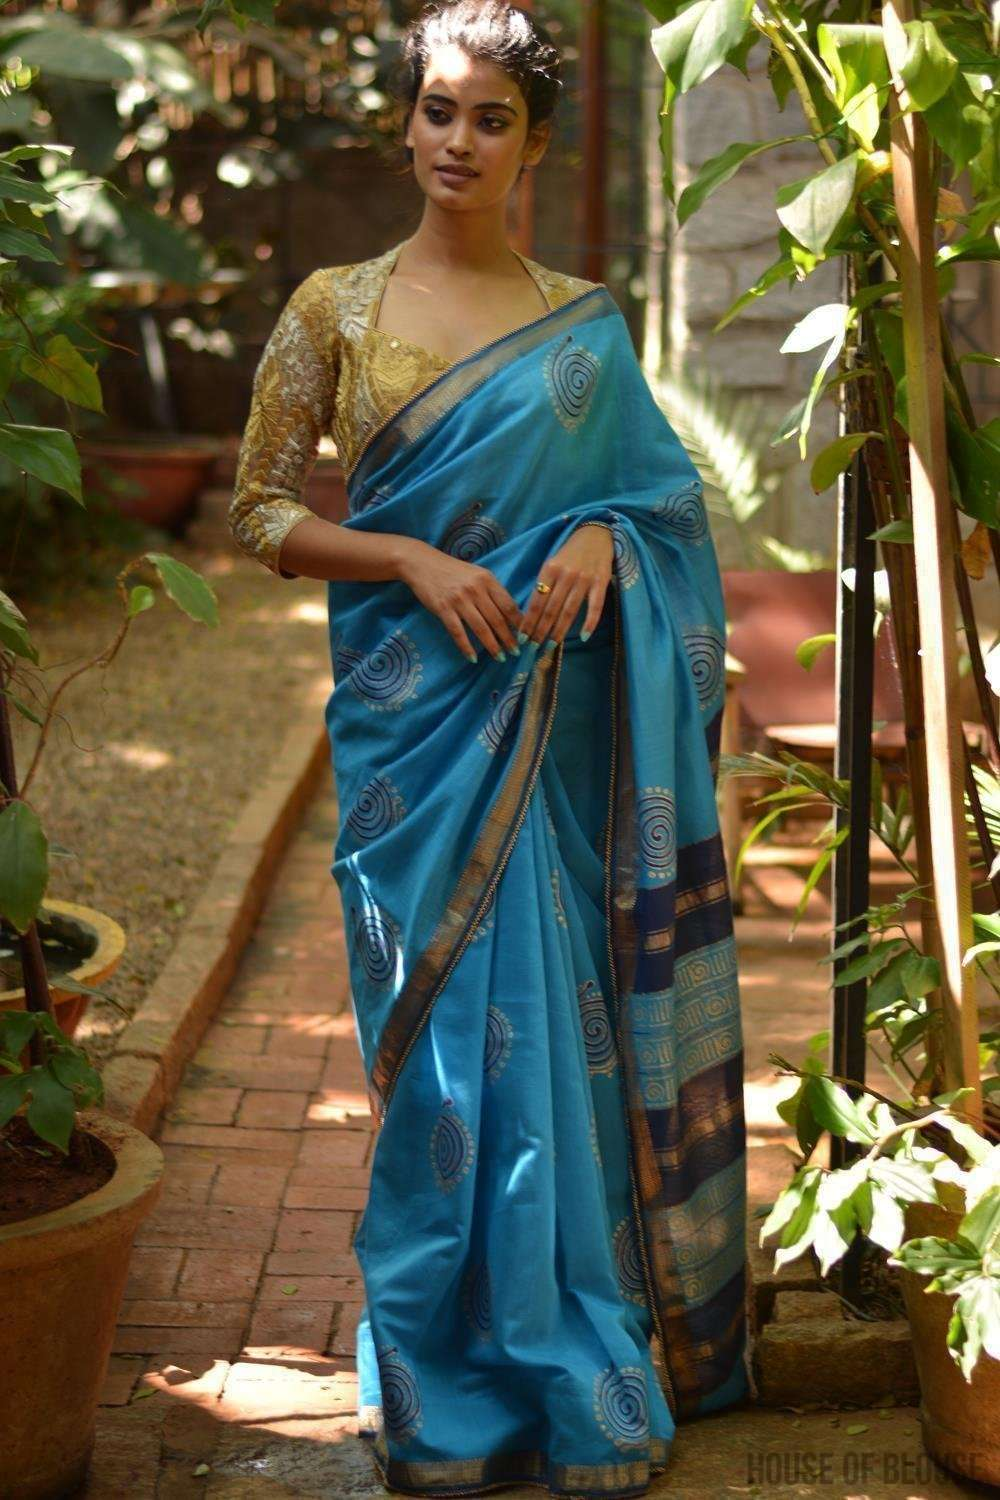 Sky blue Maheshwari handloom silkcot saree with blue and gold block print - House of Blouse